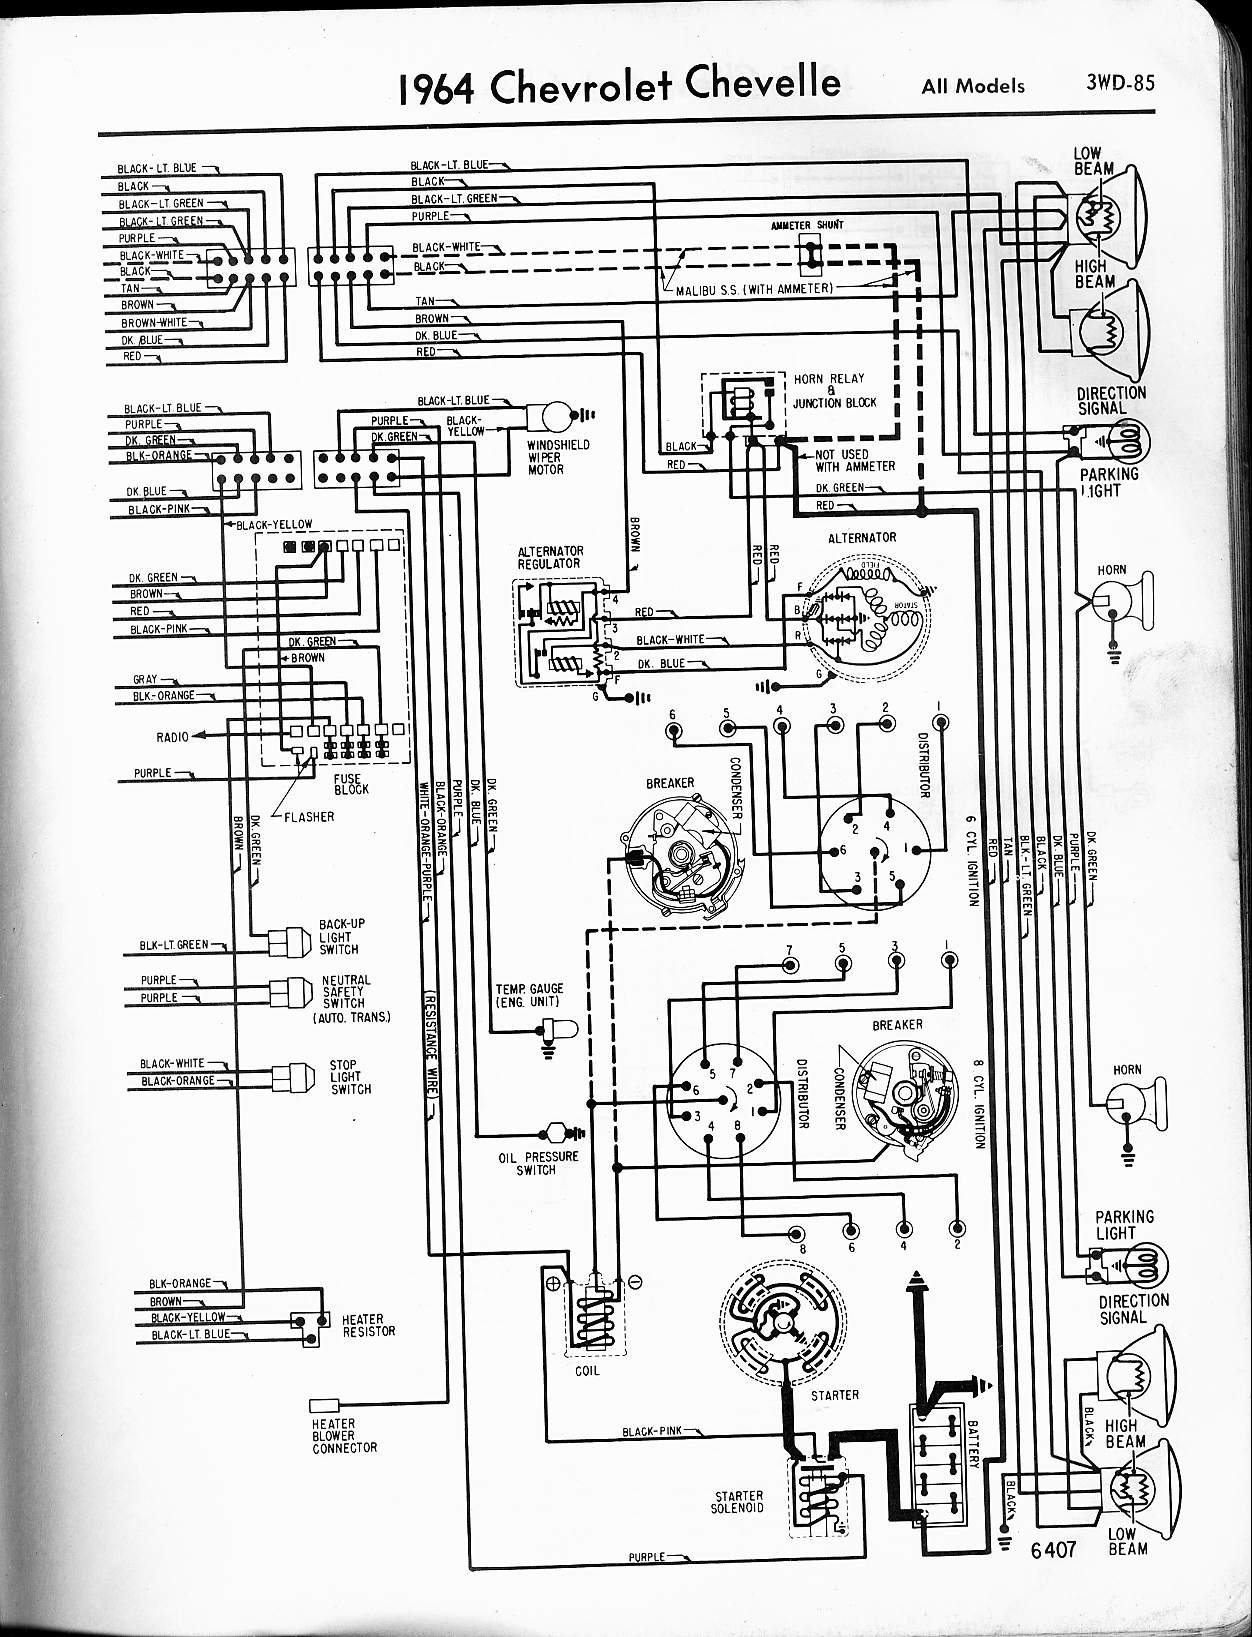 MWireChev64_3WD 085 1969 chevelle wiring diagram pdf 1969 thunderbird dash wiring 1972 chevelle ss wiring diagram at aneh.co